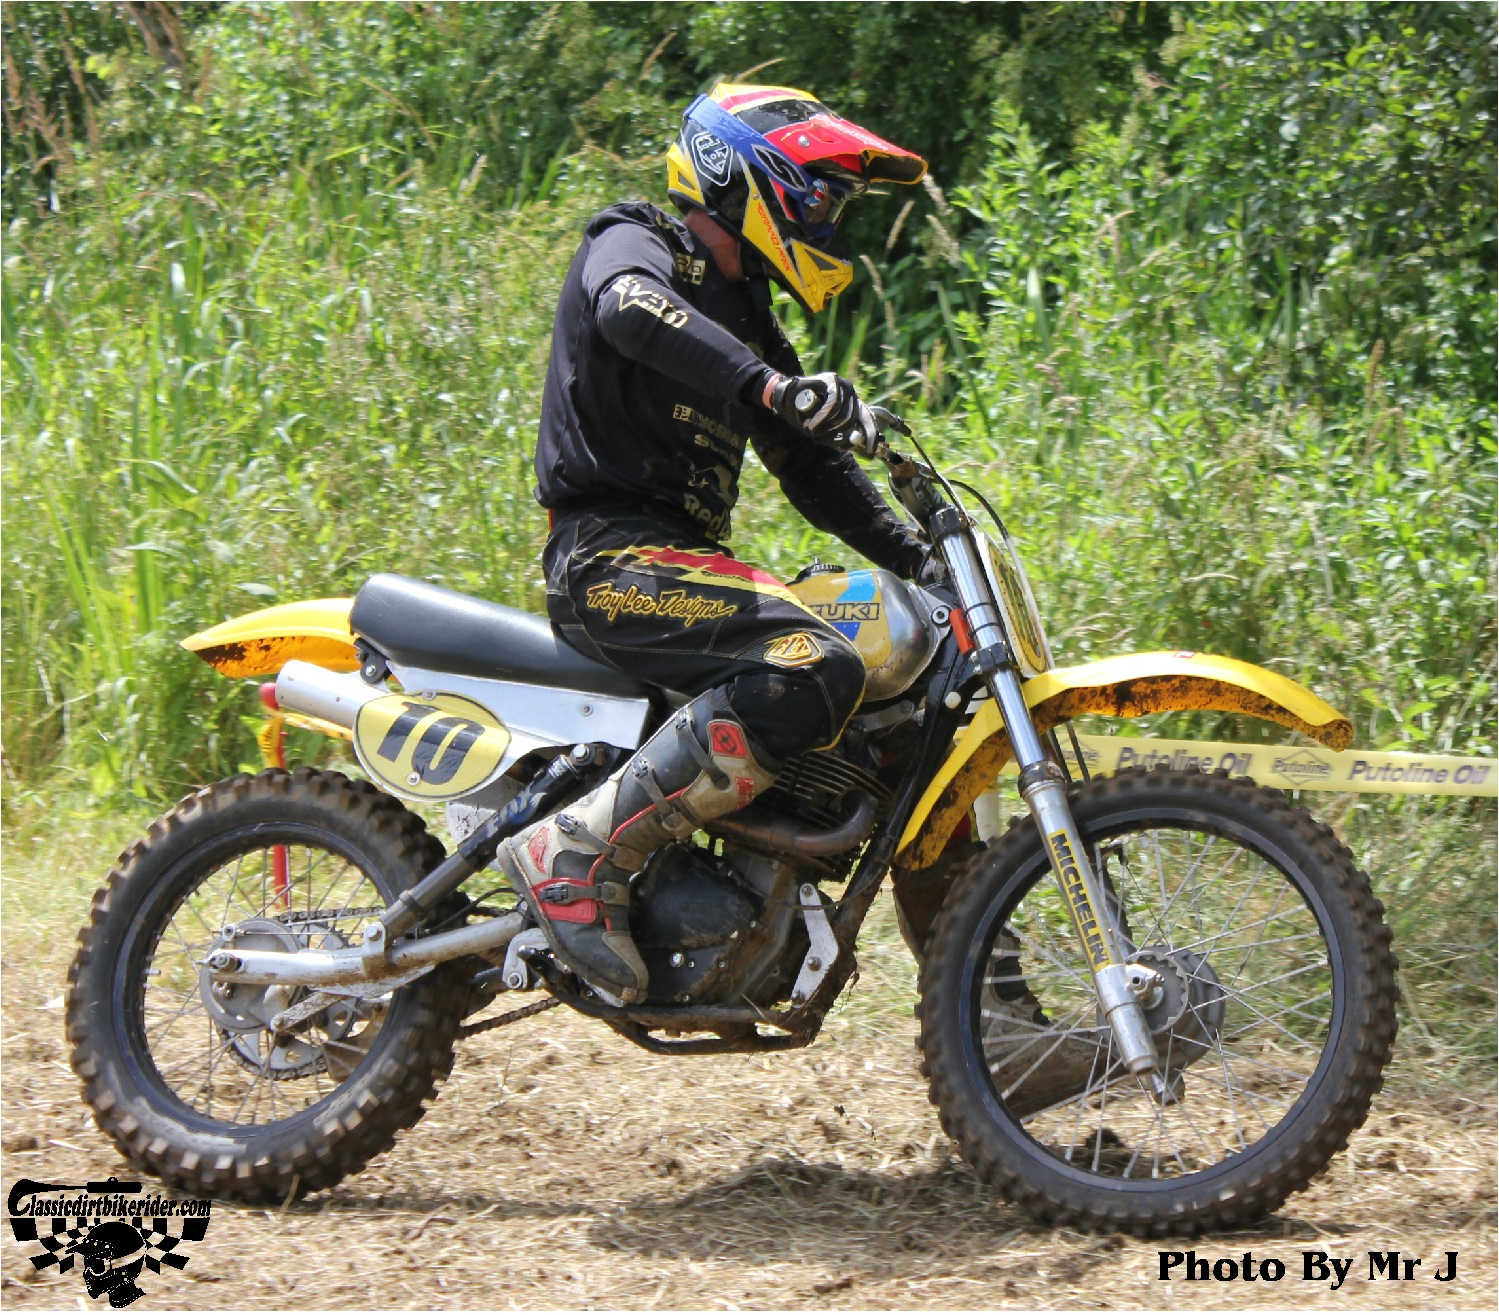 king of the castle 2015 photos Farleigh Castle twinshock motocross classicdirtbikerider.com 40